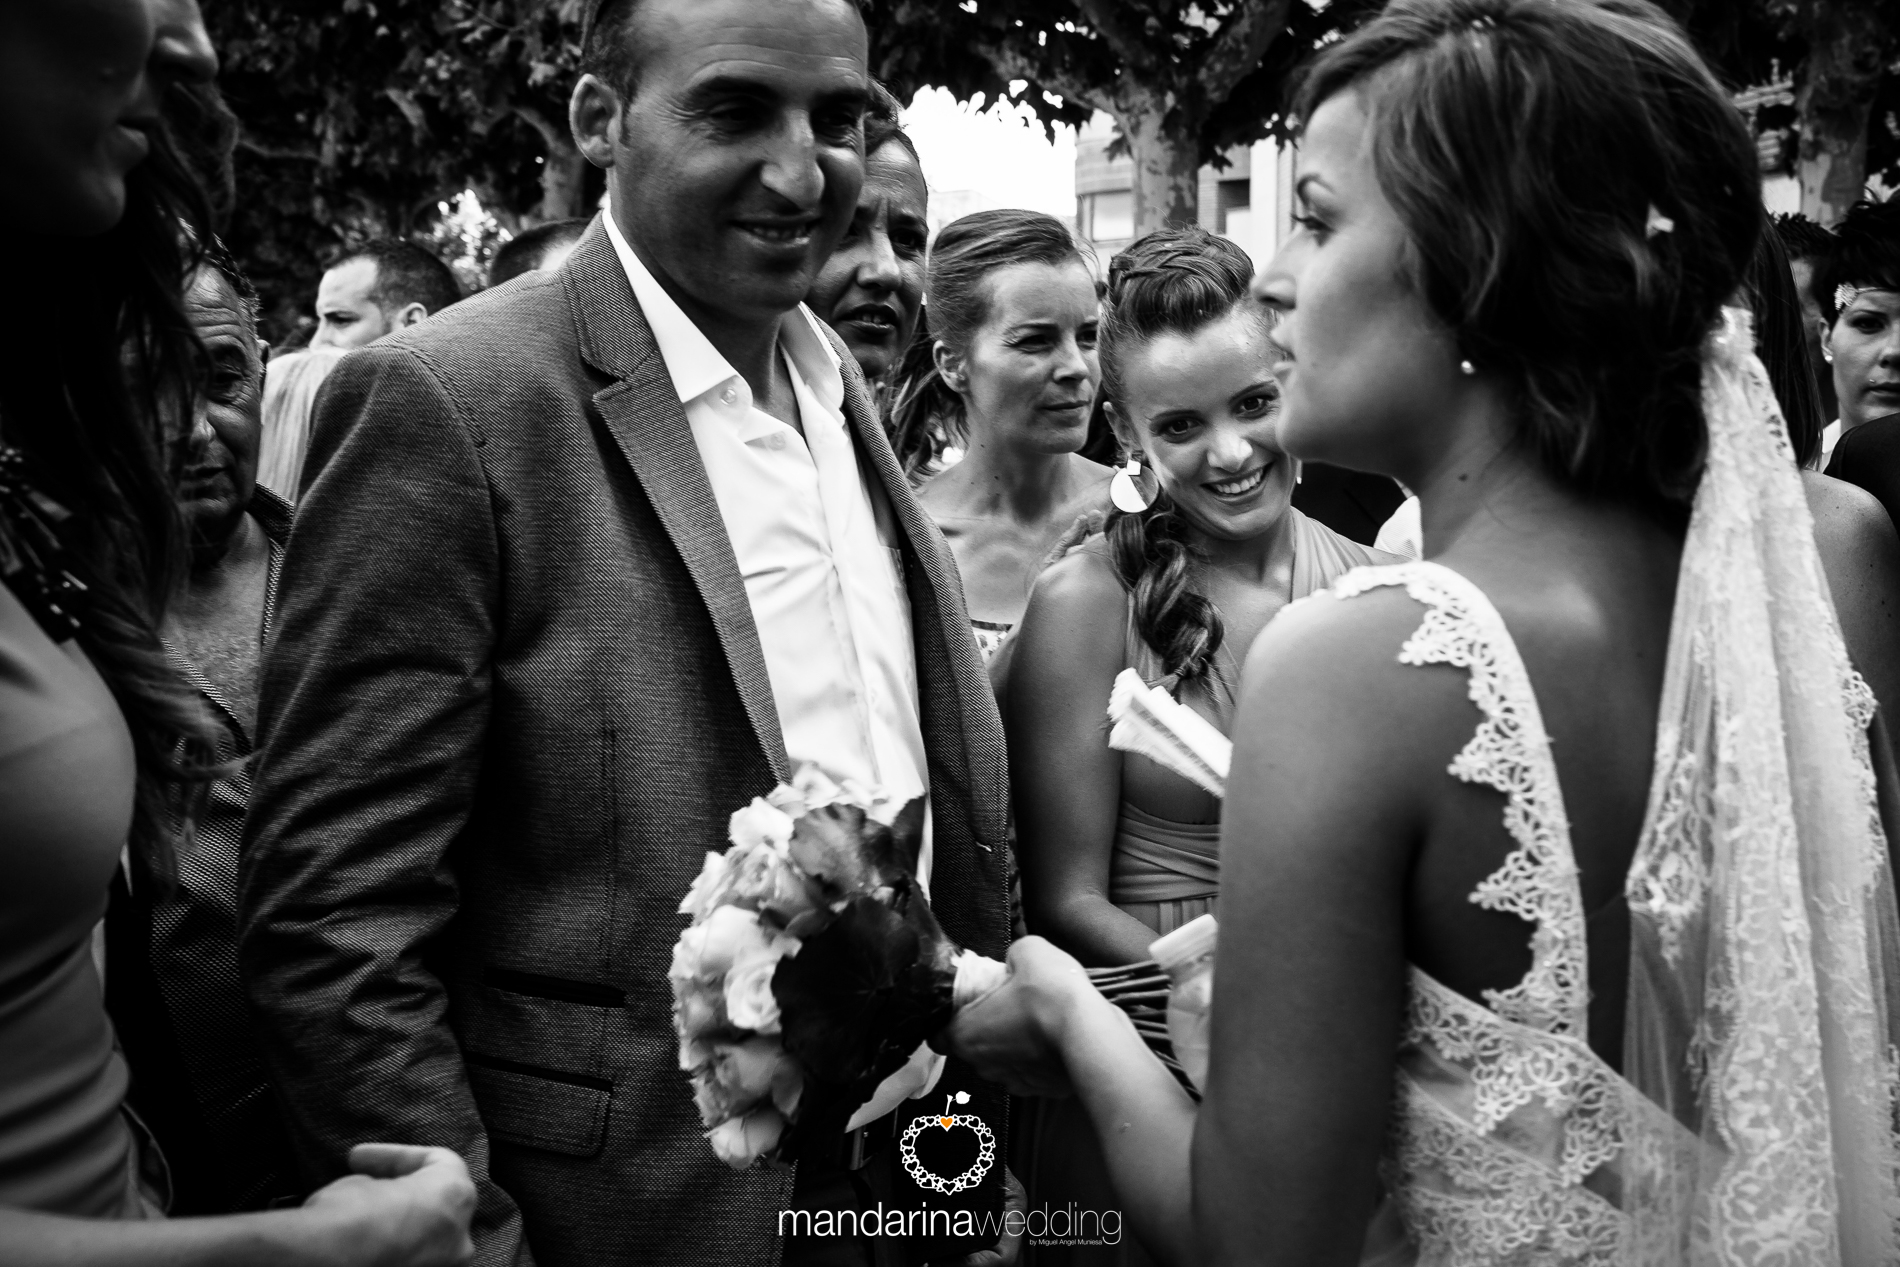 mandarina wedding_25